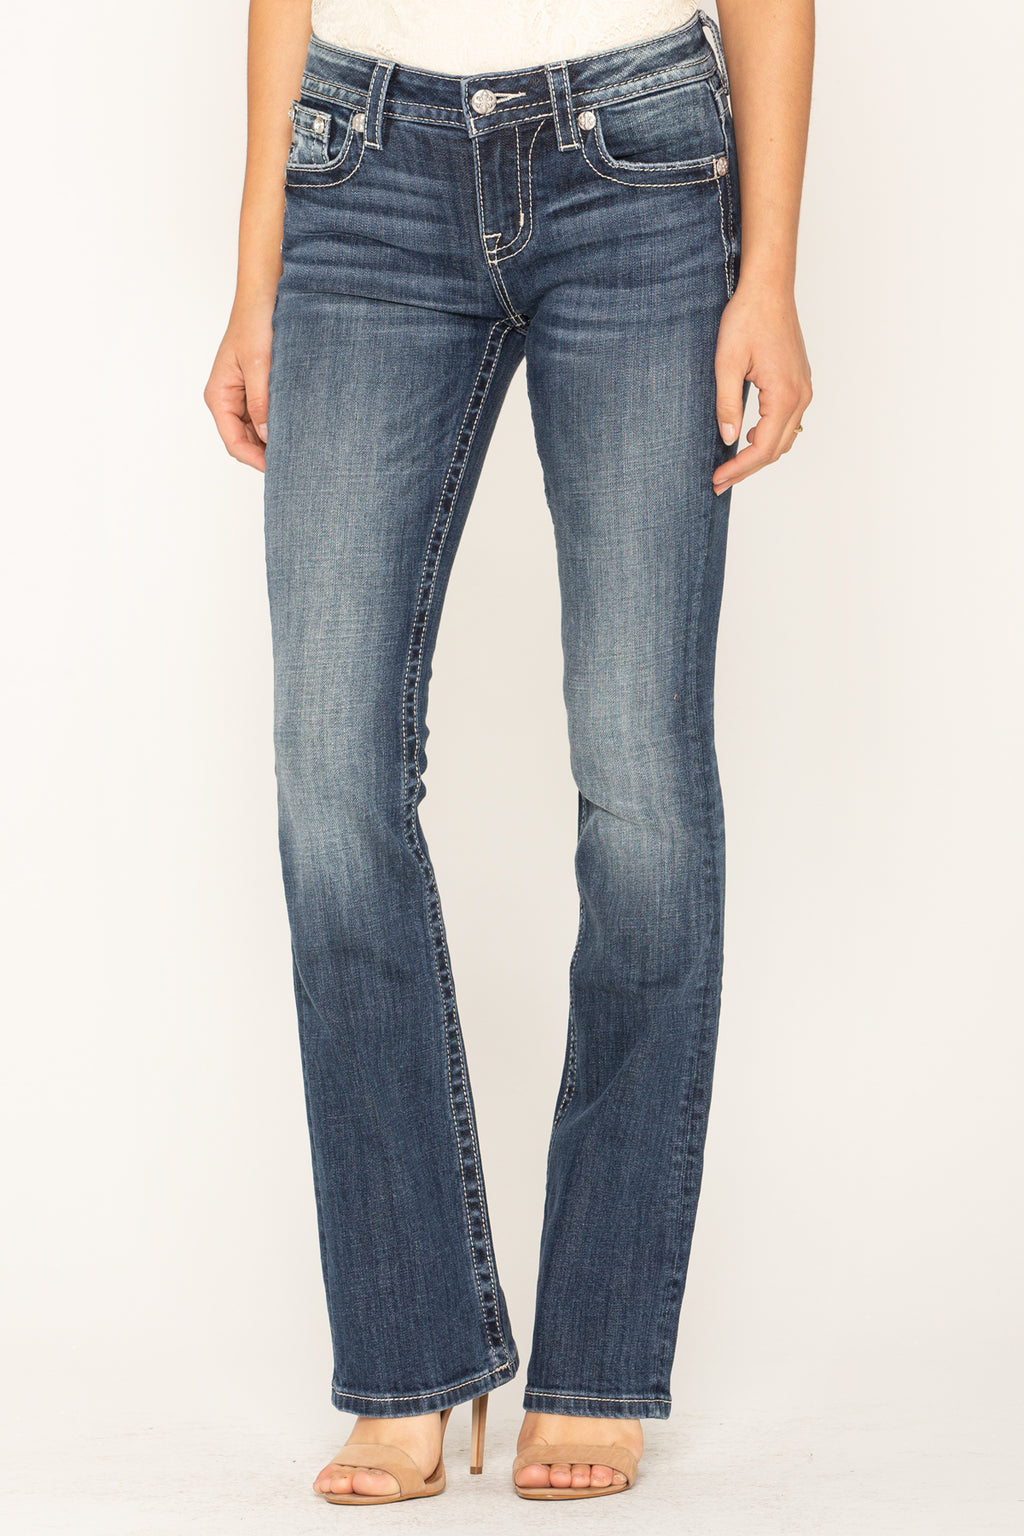 162403b21ffa LIVING IN ROMANCE BOOTCUT JEANS - front